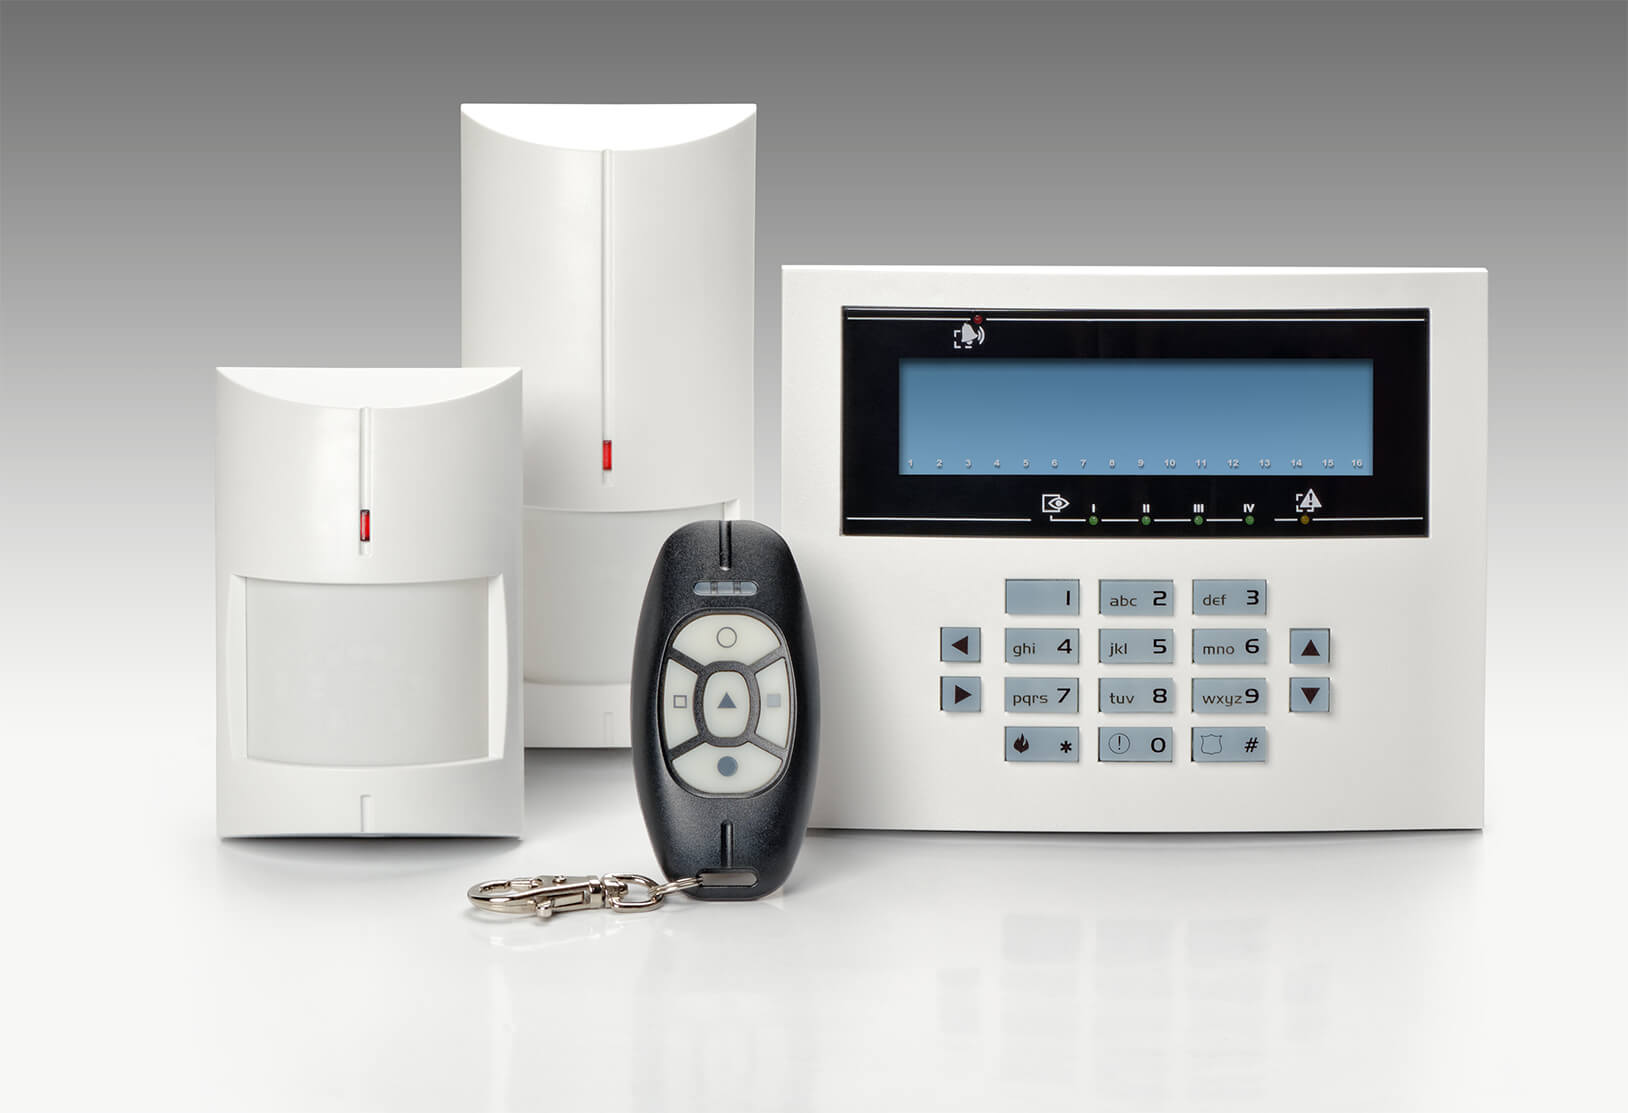 Commercial Burglar Alarms For Business in Poplar E3  - Local Poplar E3 burglar alarm company.Call 02078872244 - Dedicated to Safety & Security. Companies, shops and homes ..